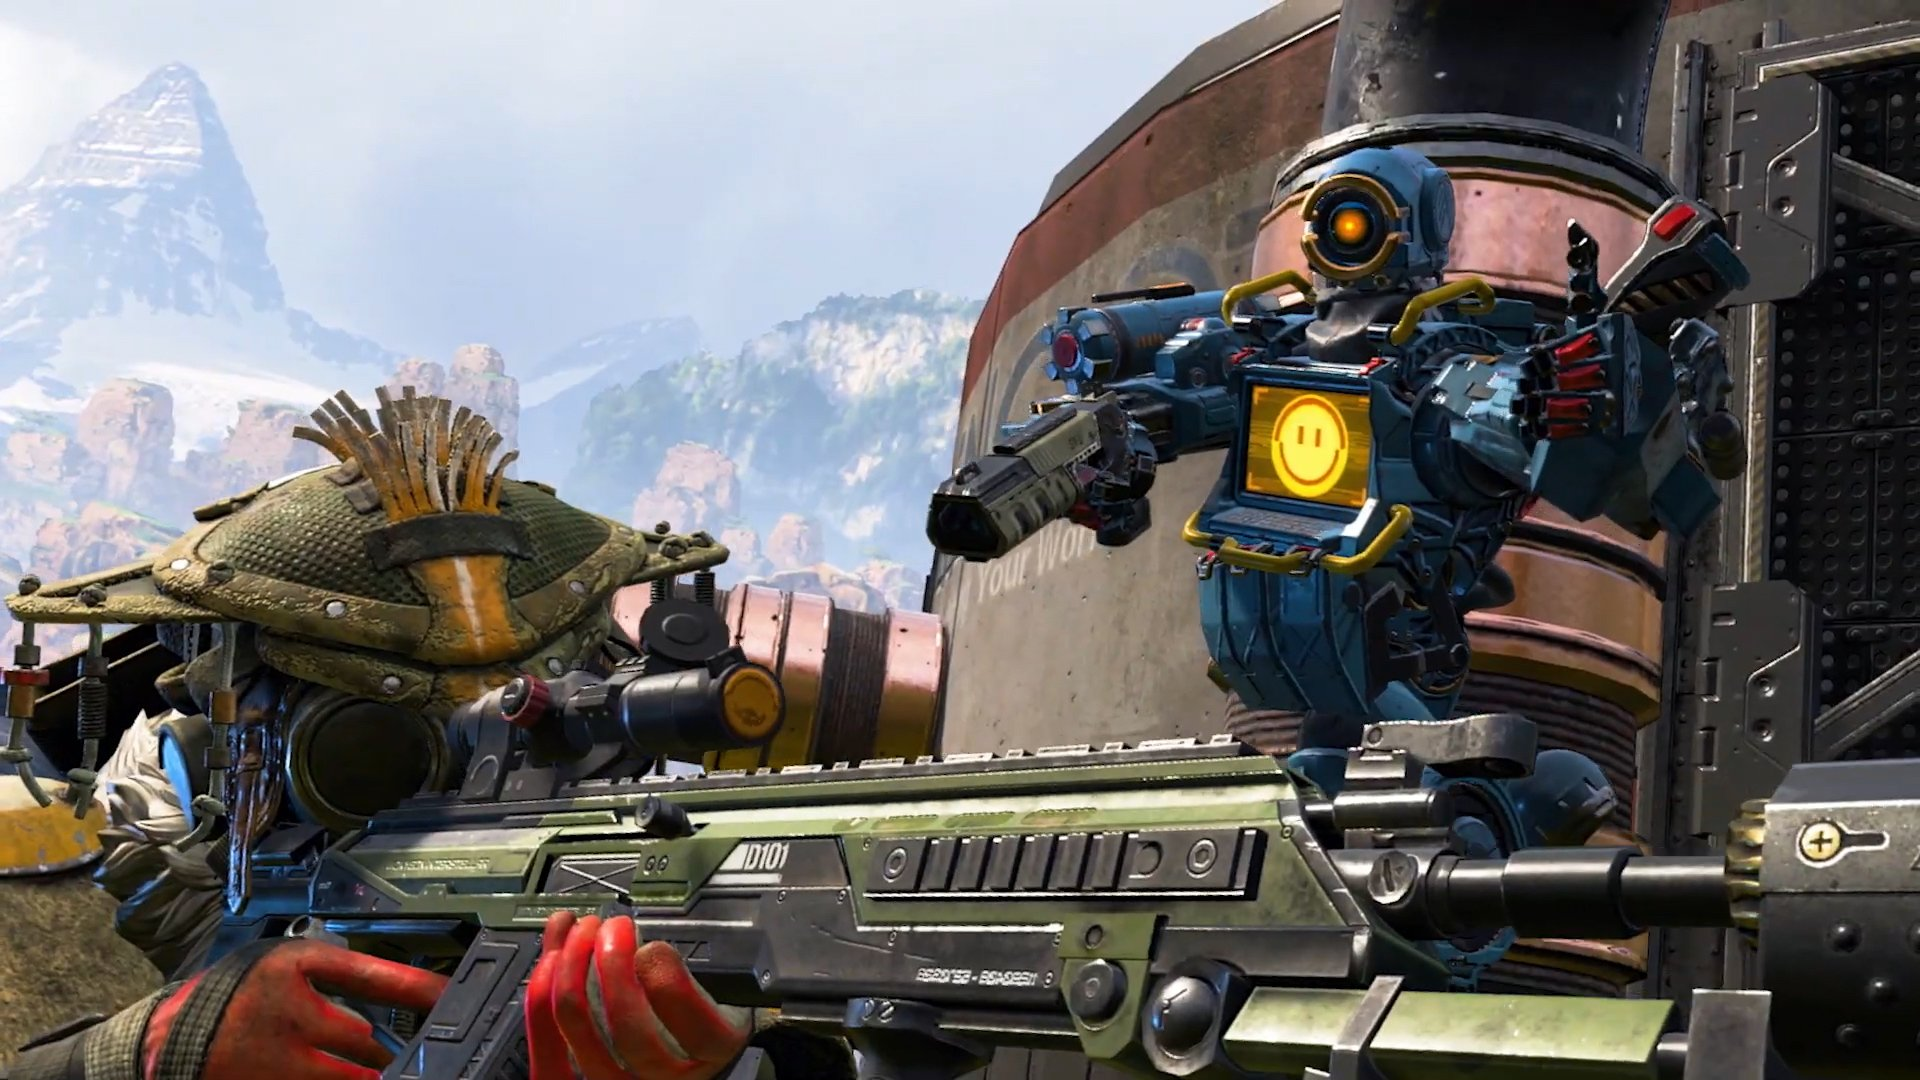 Apex Legends characters aiming for victory